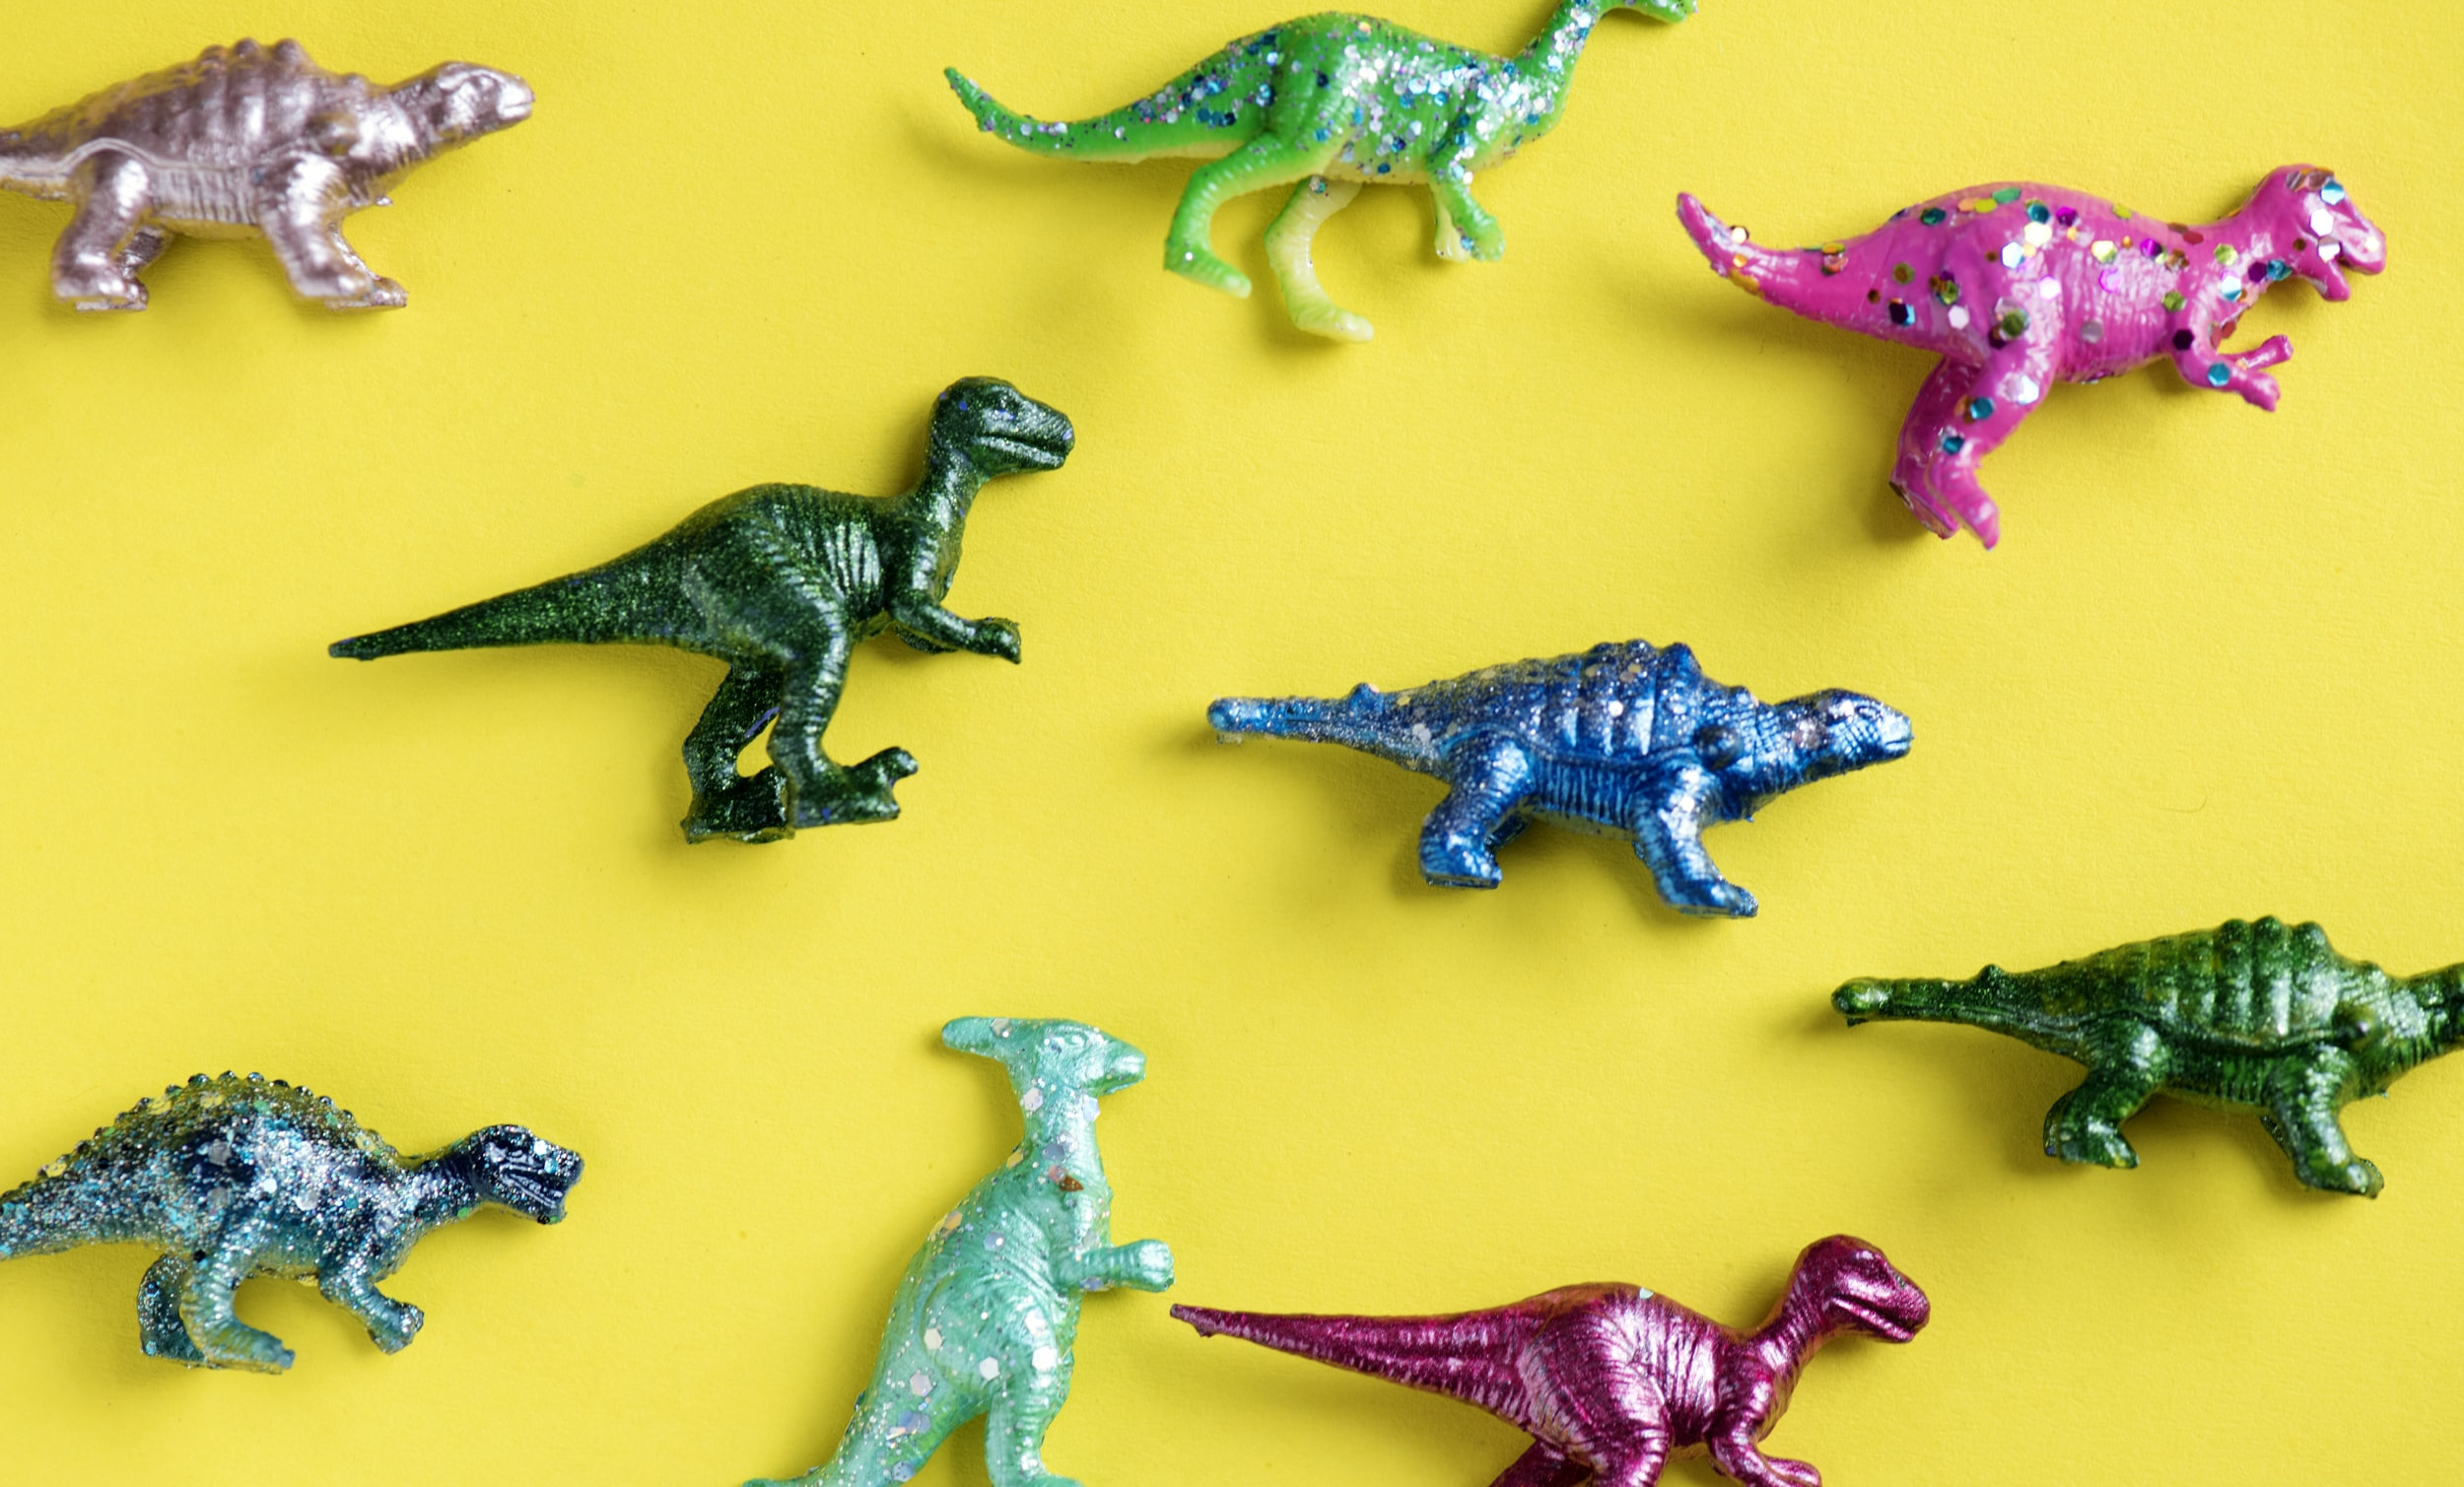 Toy dinosaurs lying on a yellow background